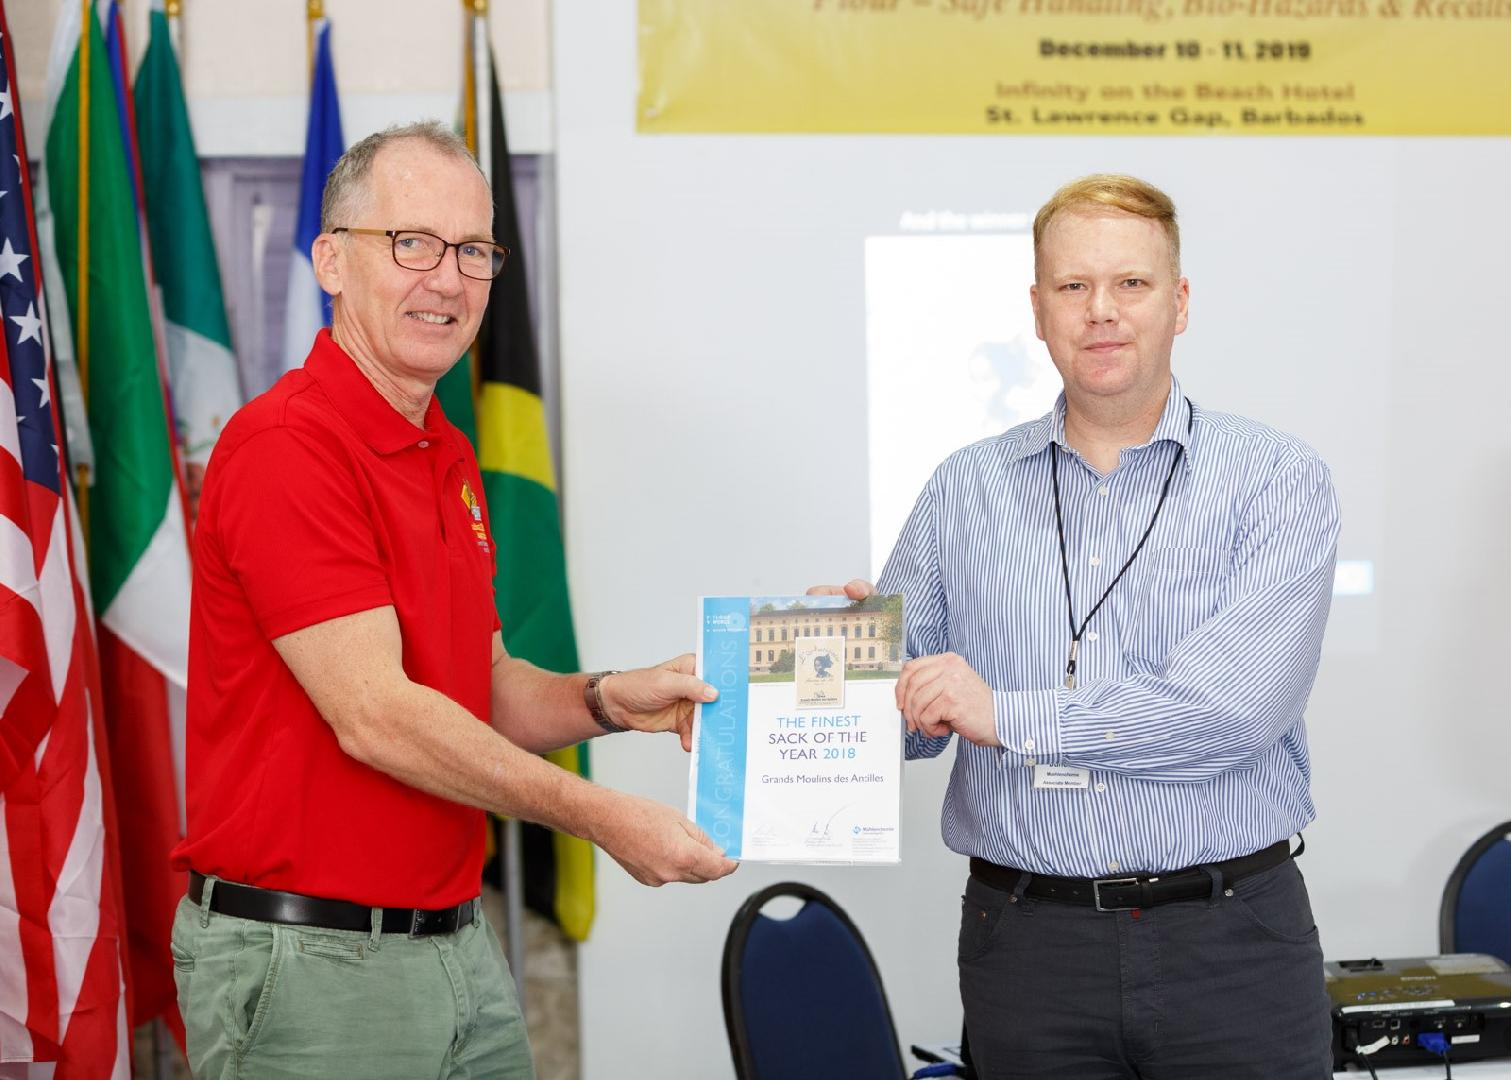 Mühlenchemie names Grands Moulins des Antilles winner of the 'Flour Sack of the Year 2018' award